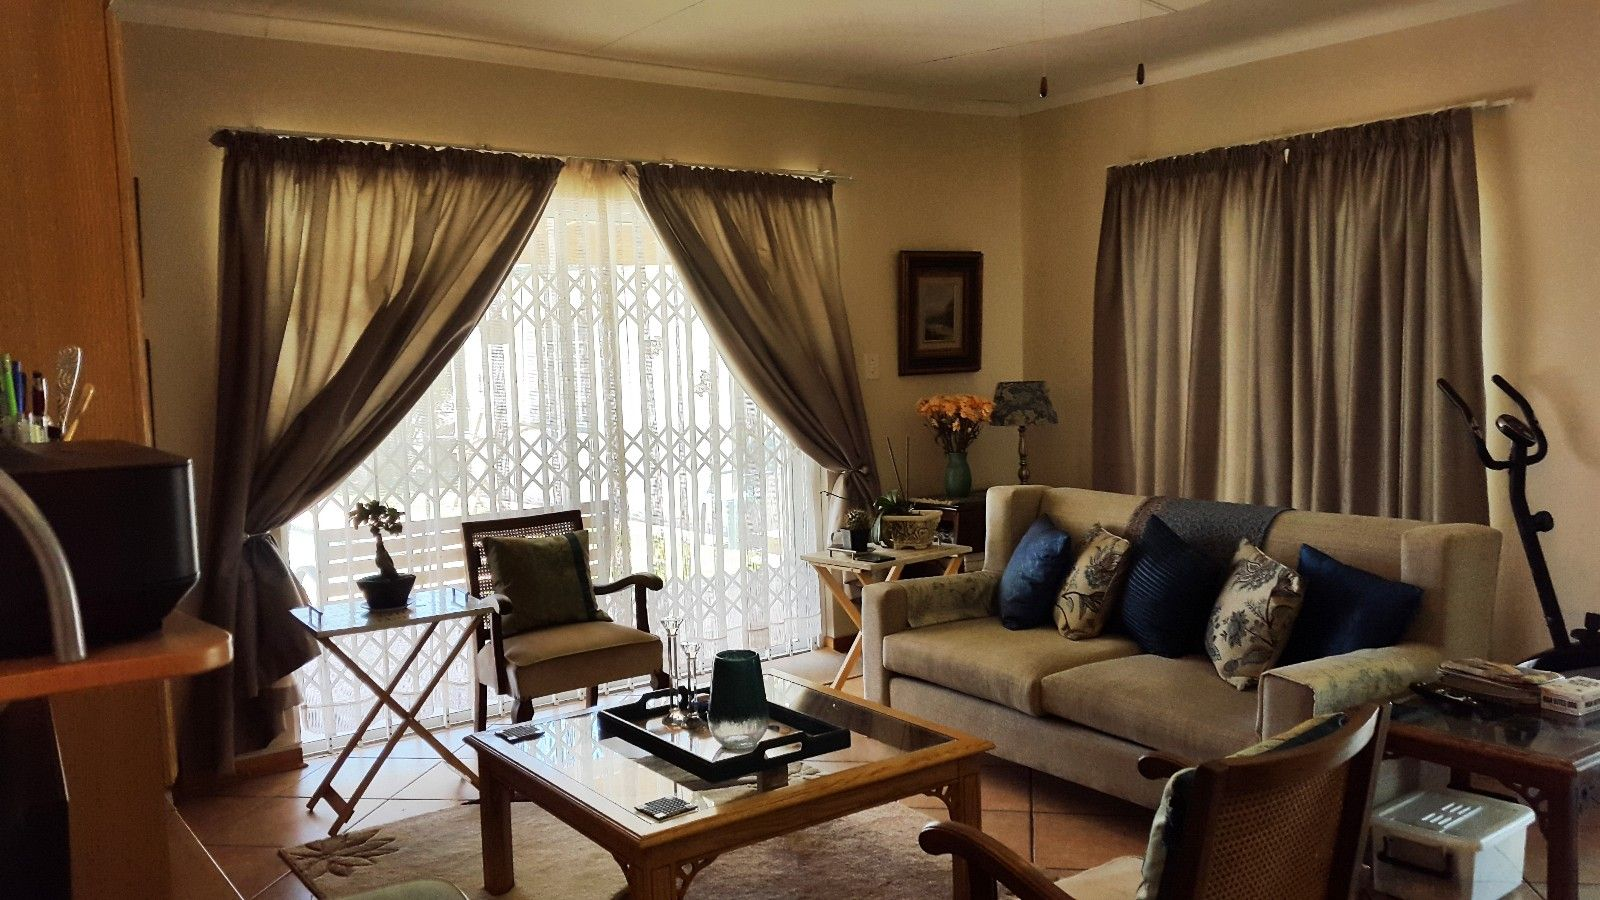 Potchefstroom Central for sale property. Ref No: 13460775. Picture no 18